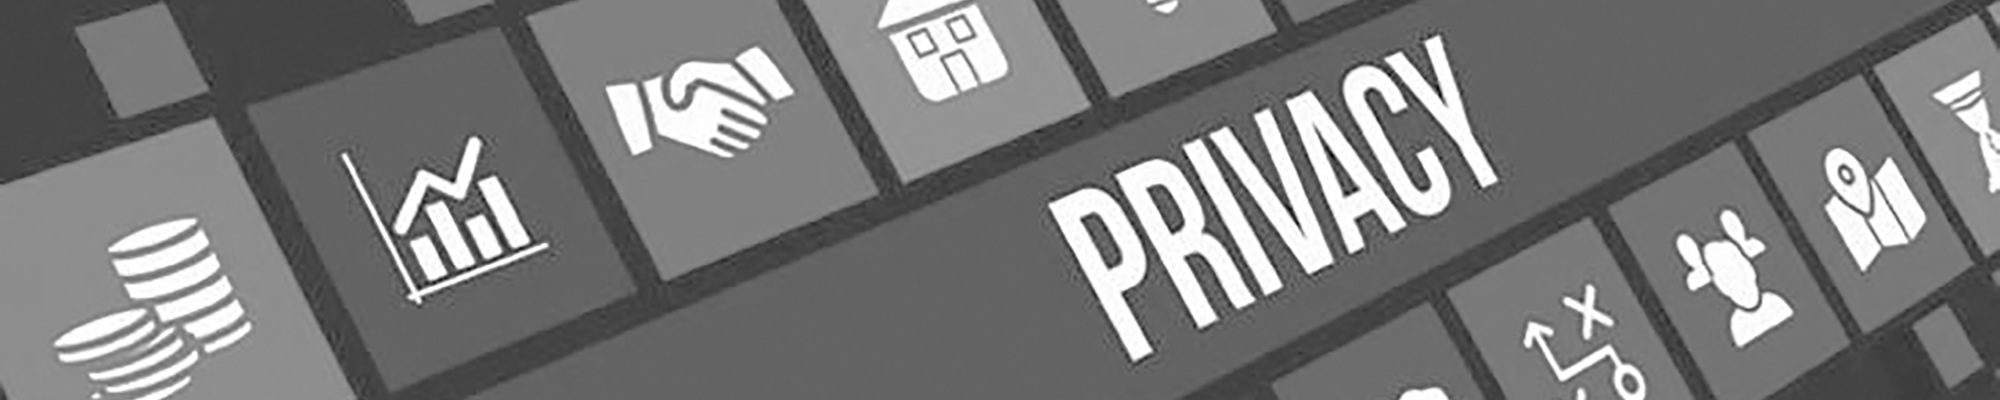 banner - privacy